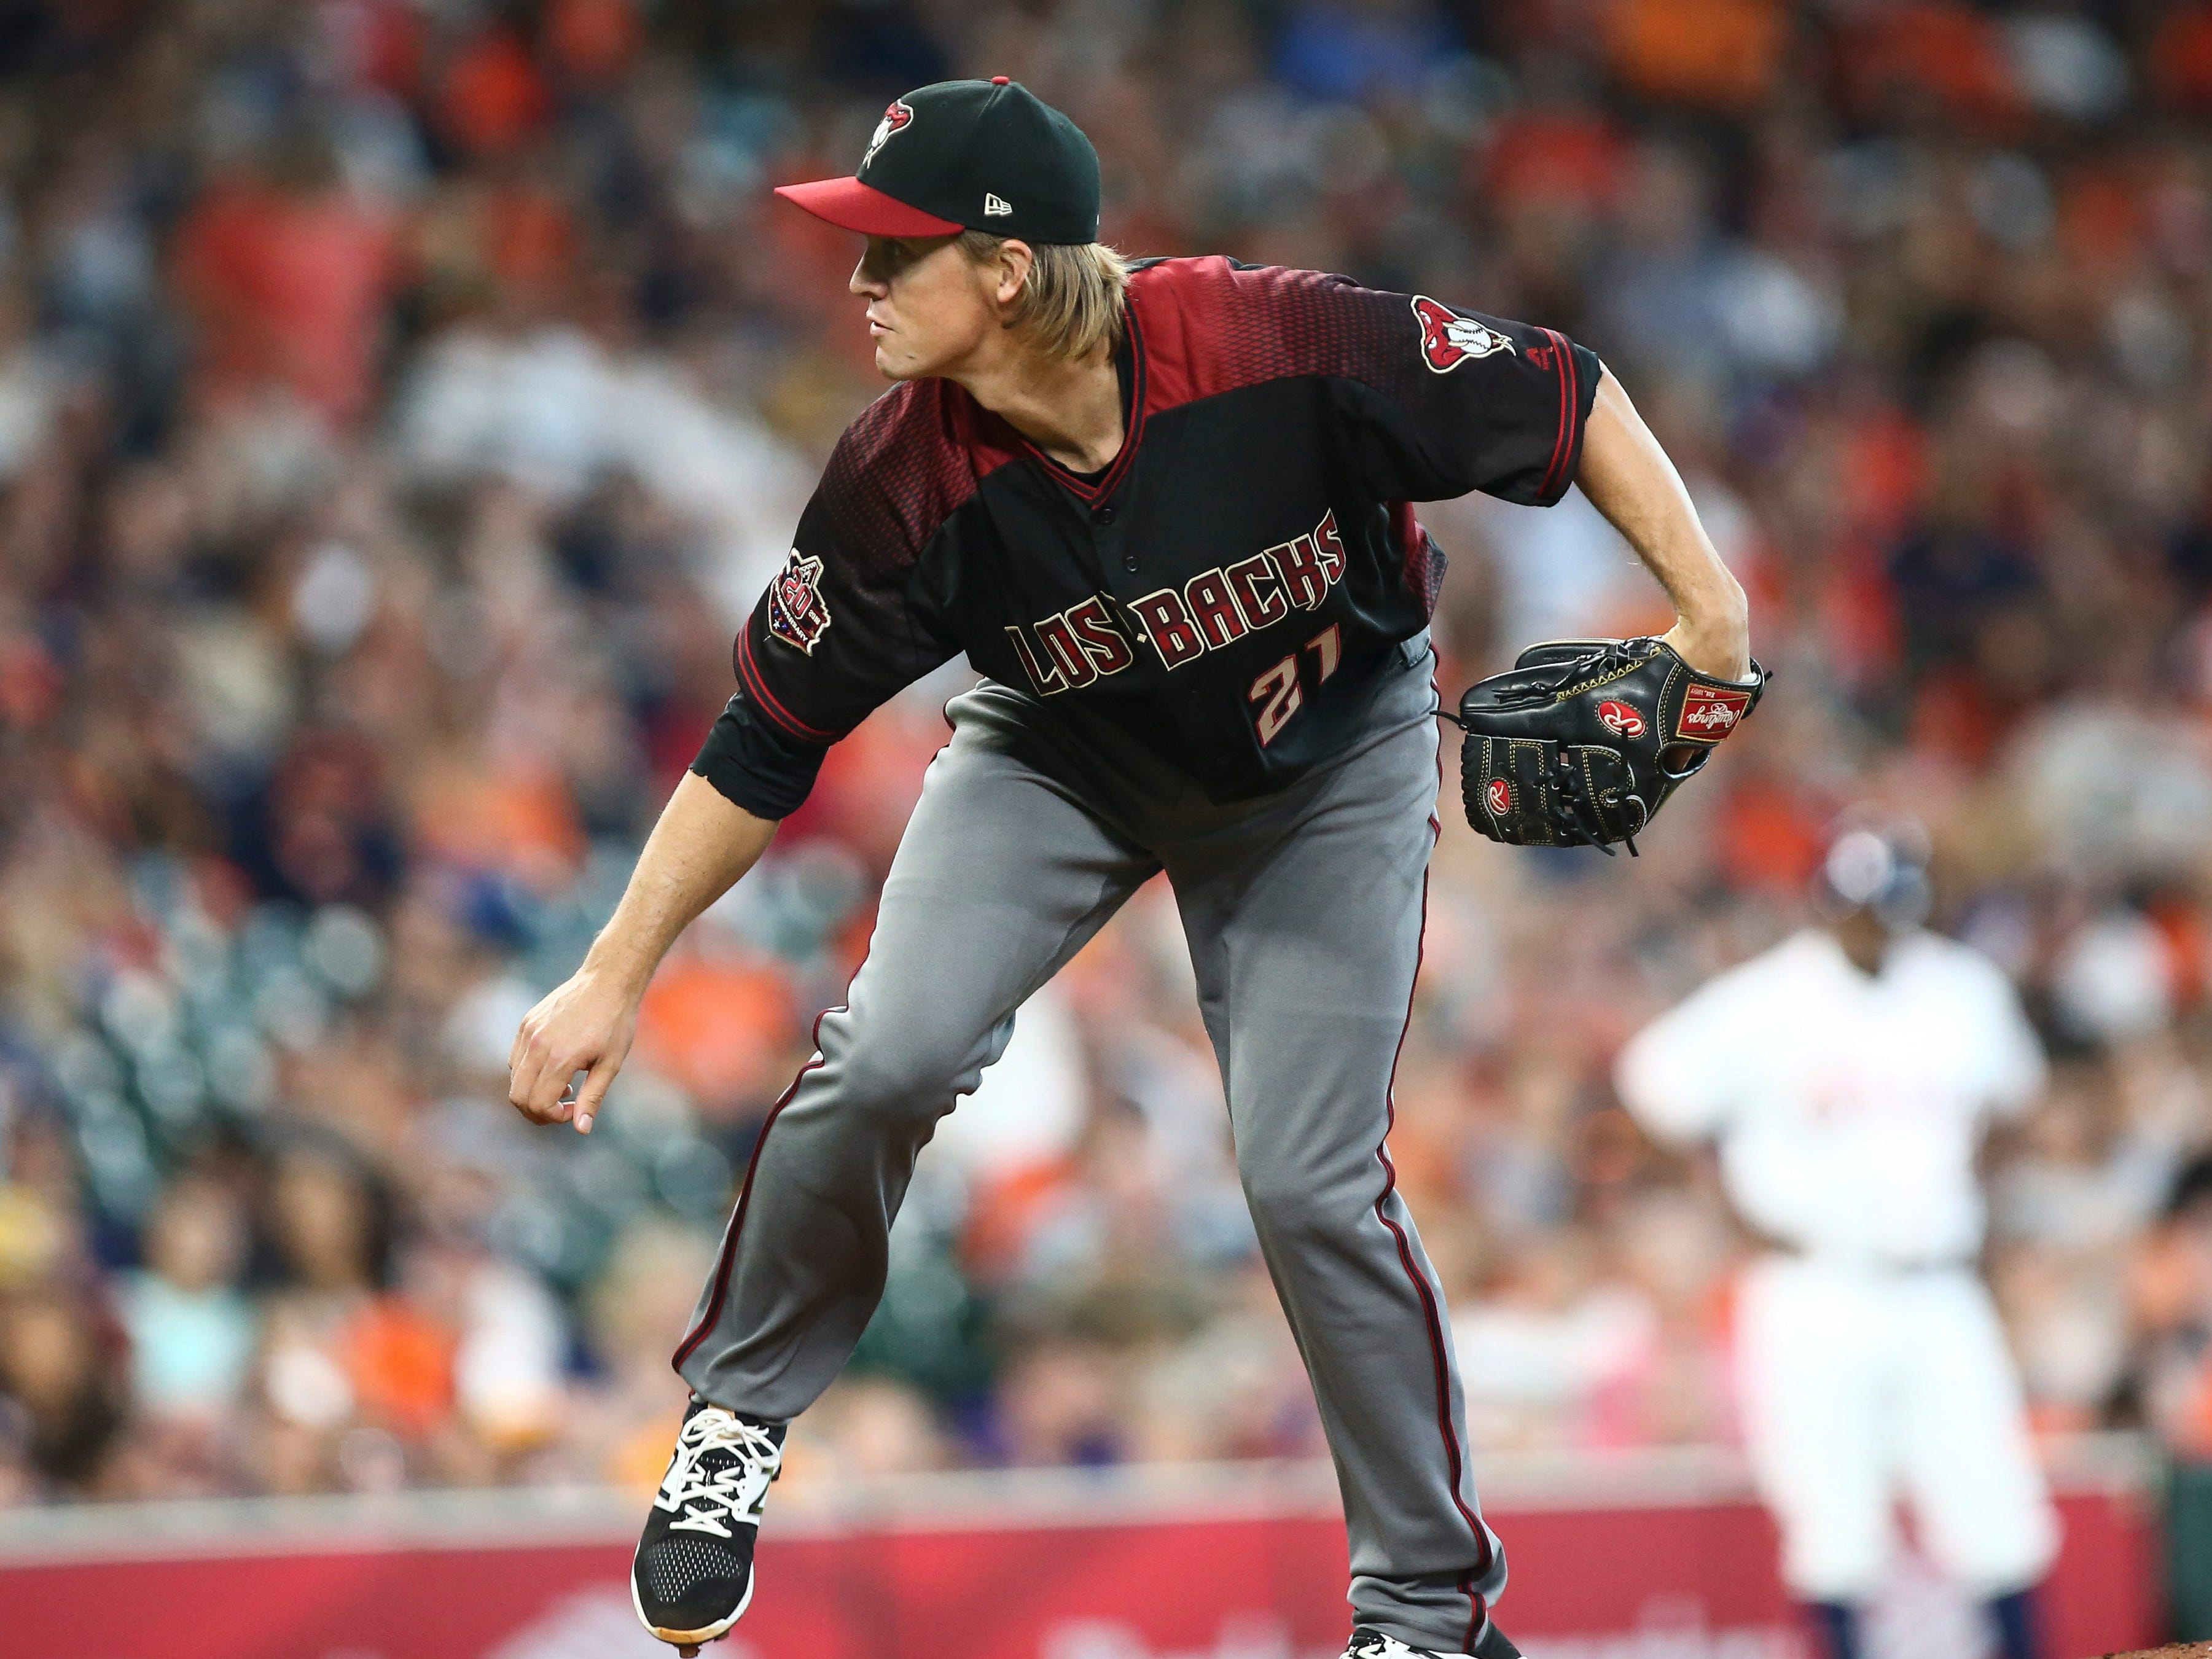 Sep 16, 2018; Houston, TX, USA; Arizona Diamondbacks starting pitcher Zack Greinke (21) delivers a pitch during the second inning against the Houston Astros at Minute Maid Park. Mandatory Credit: Troy Taormina-USA TODAY Sports